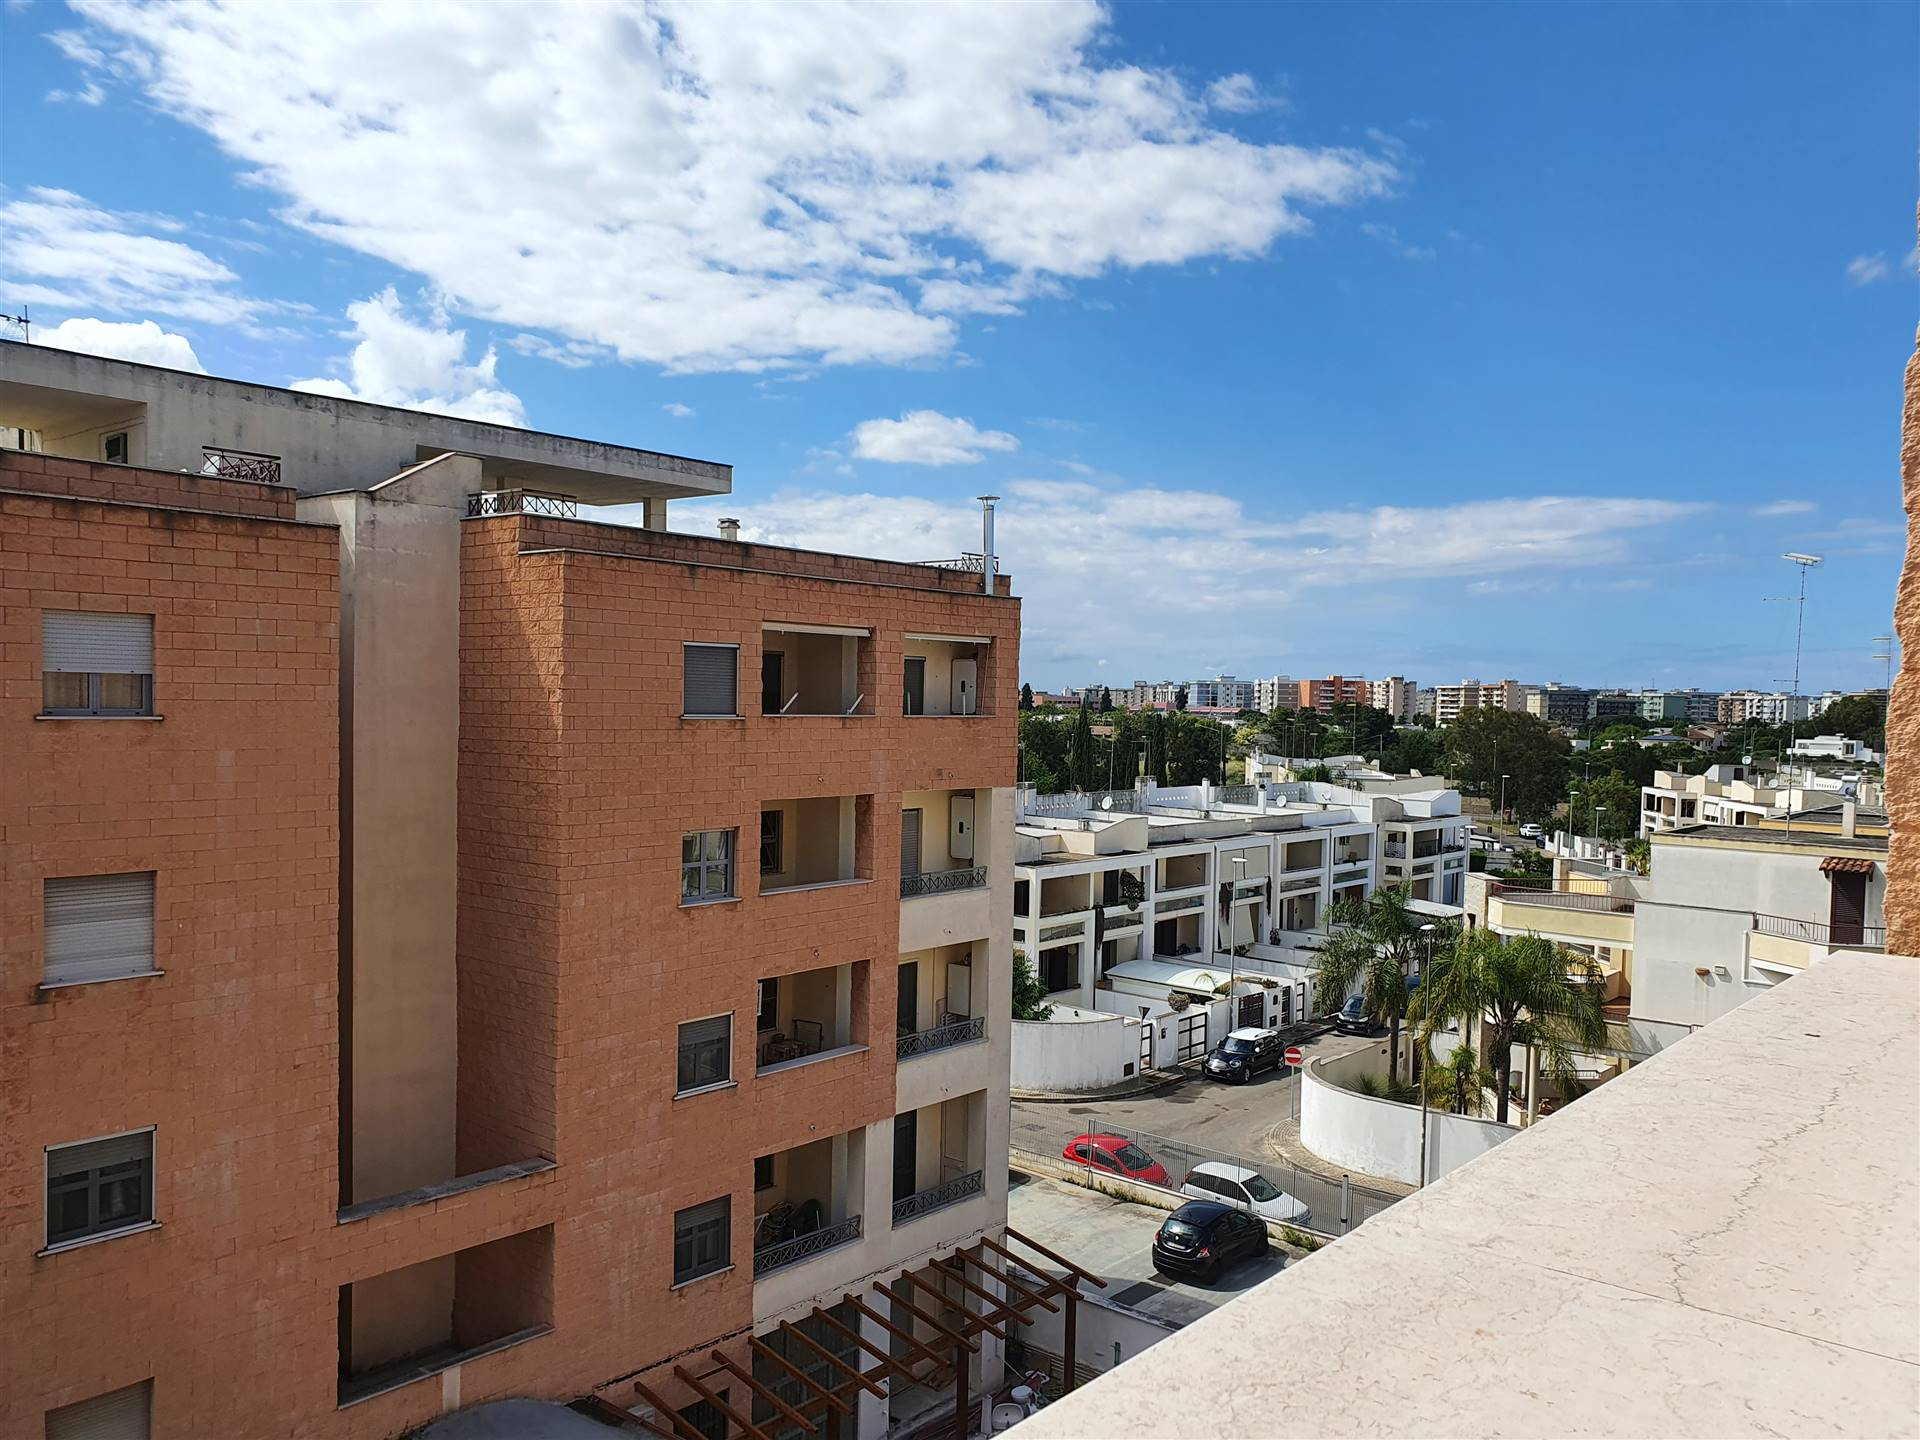 SETTELACQUARE, LECCE, Apartment for rent of 45 Sq. mt., Habitable, Heating Individual heating system, Energetic class: G, Epi: 132,7 kwh/m2 year,